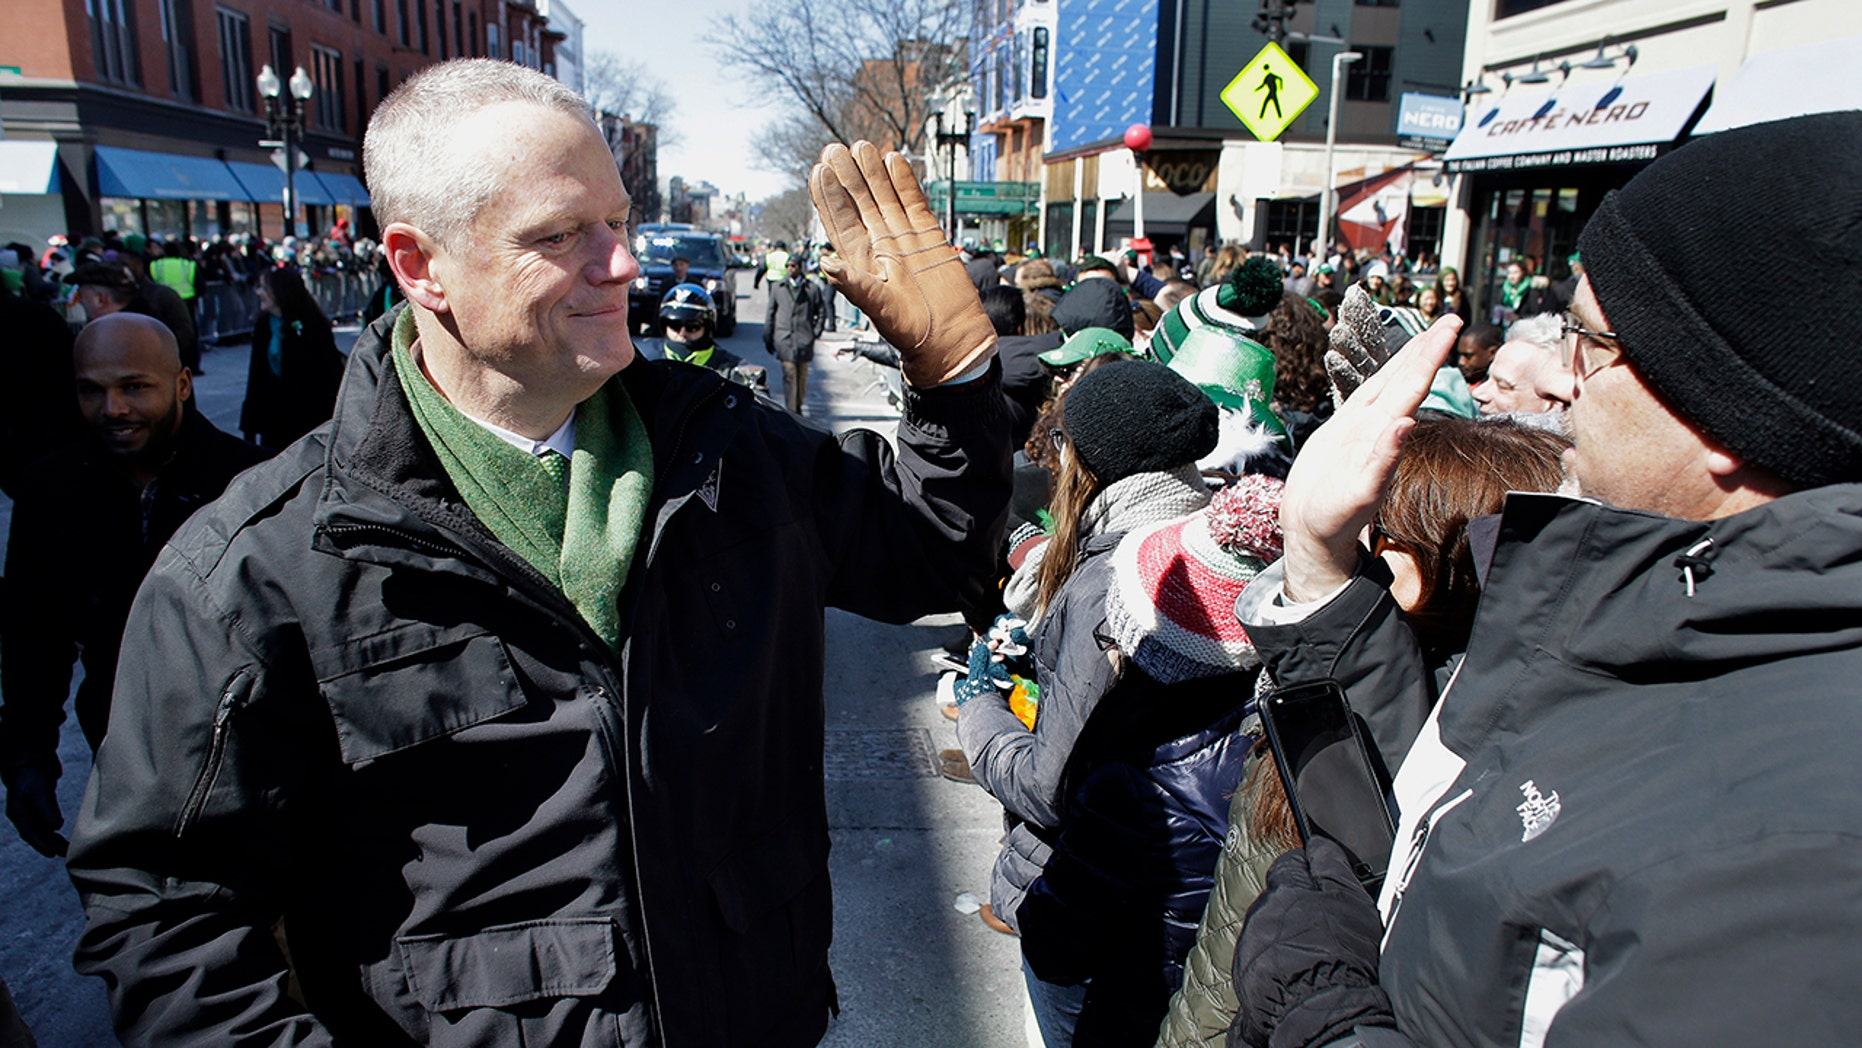 Massachusetts Gov. Charlie Baker shakes hands with constituents at the annual St. Patrick's Day parade in Boston on Sunday.